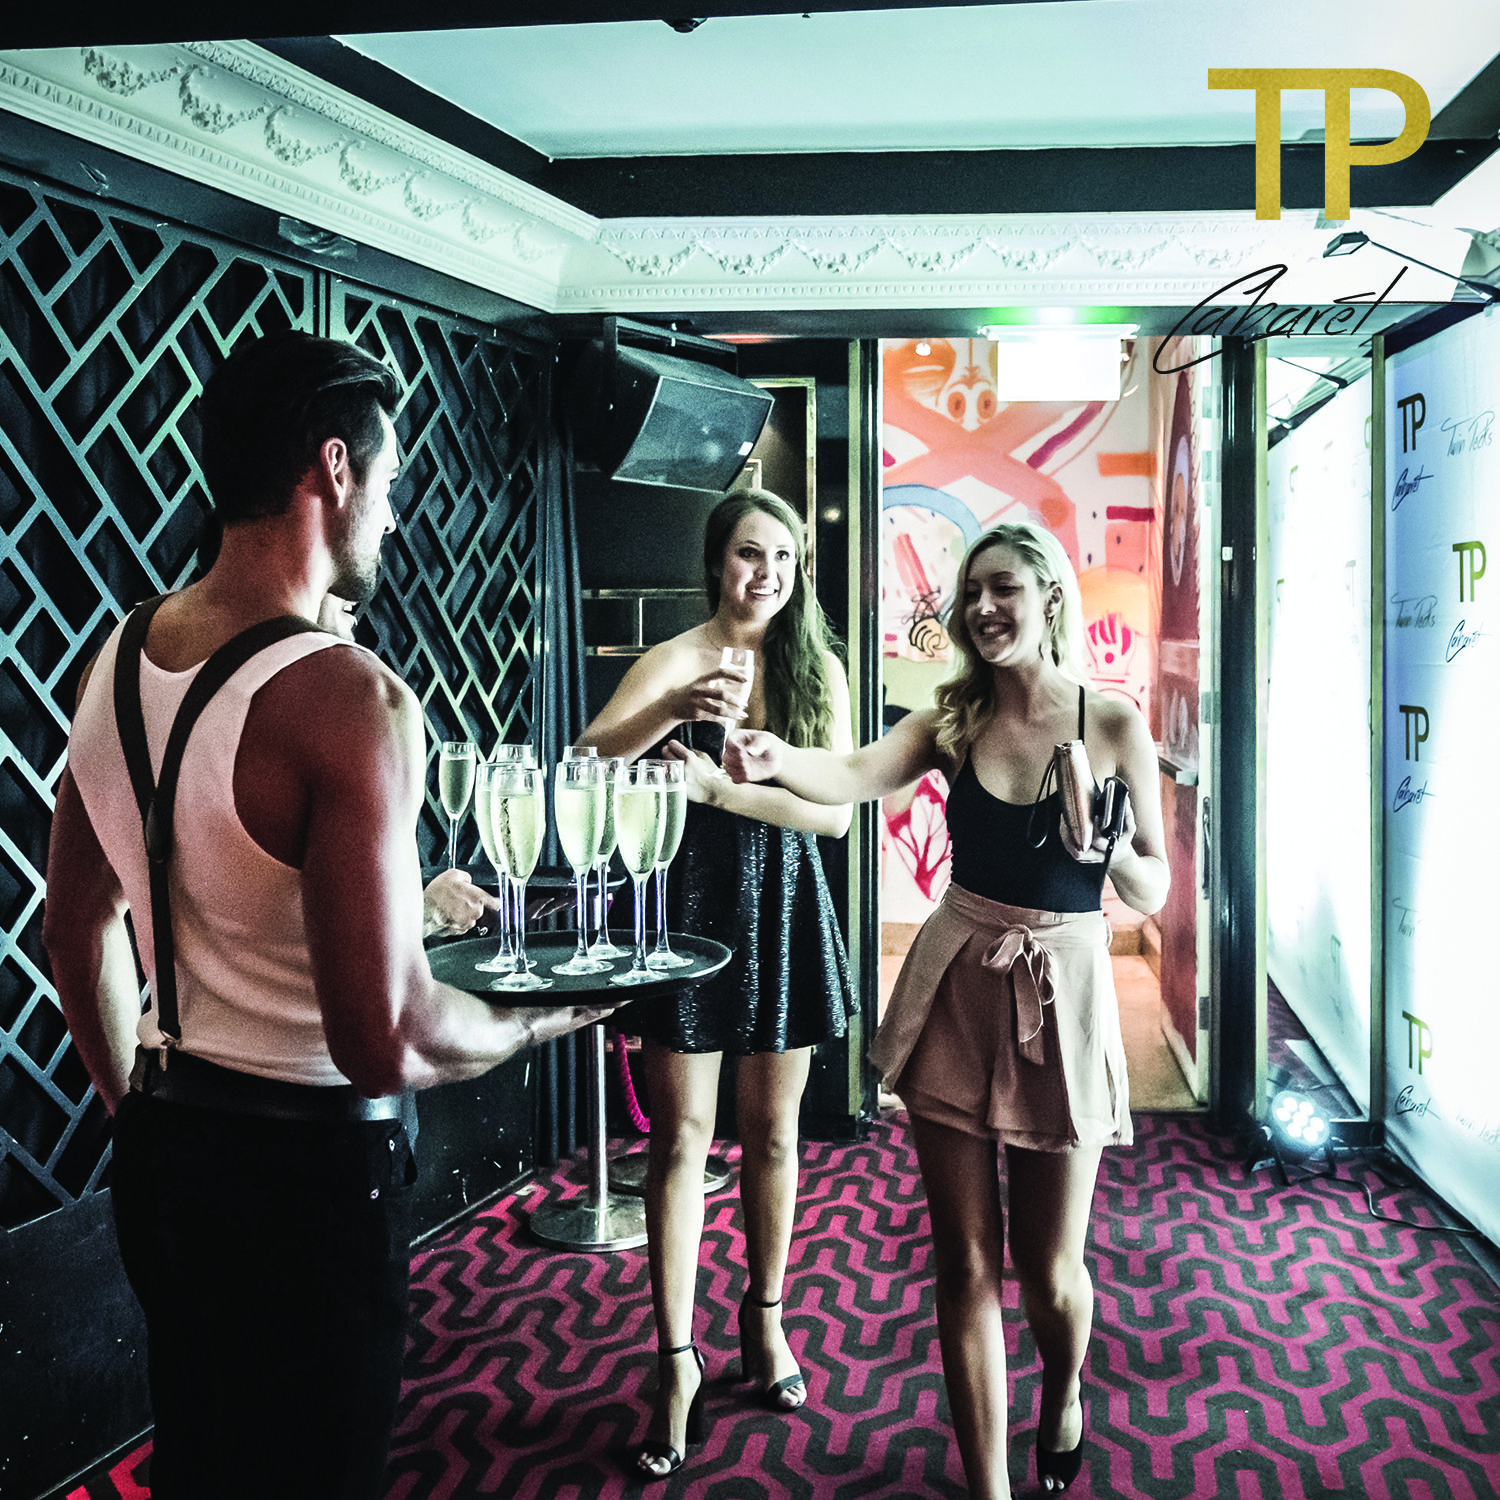 Champagne upon arrival for your special night with Twin Pecks. Dinner and Show that will take your breath away 😍  .  .  .  .  .  #TwinPecks #TP #SydneyVenue #Muscles #HotMen #HensNight #SydneyShow #Show #Sizzling #AbsForDays #Abs #BaesOfInstagram #Sexy #KillerAbs #HensParty #SydneyEntertainment #BacheloretteParty #NaughtyChristmas #LadiesNight #BridalShower #SydneyWedding #Bridesmaids #ToplessWaiters #MaleModel #BrideToBe #MaleStrippers #girlsnightout #CabaretShow #AllMaleRevue